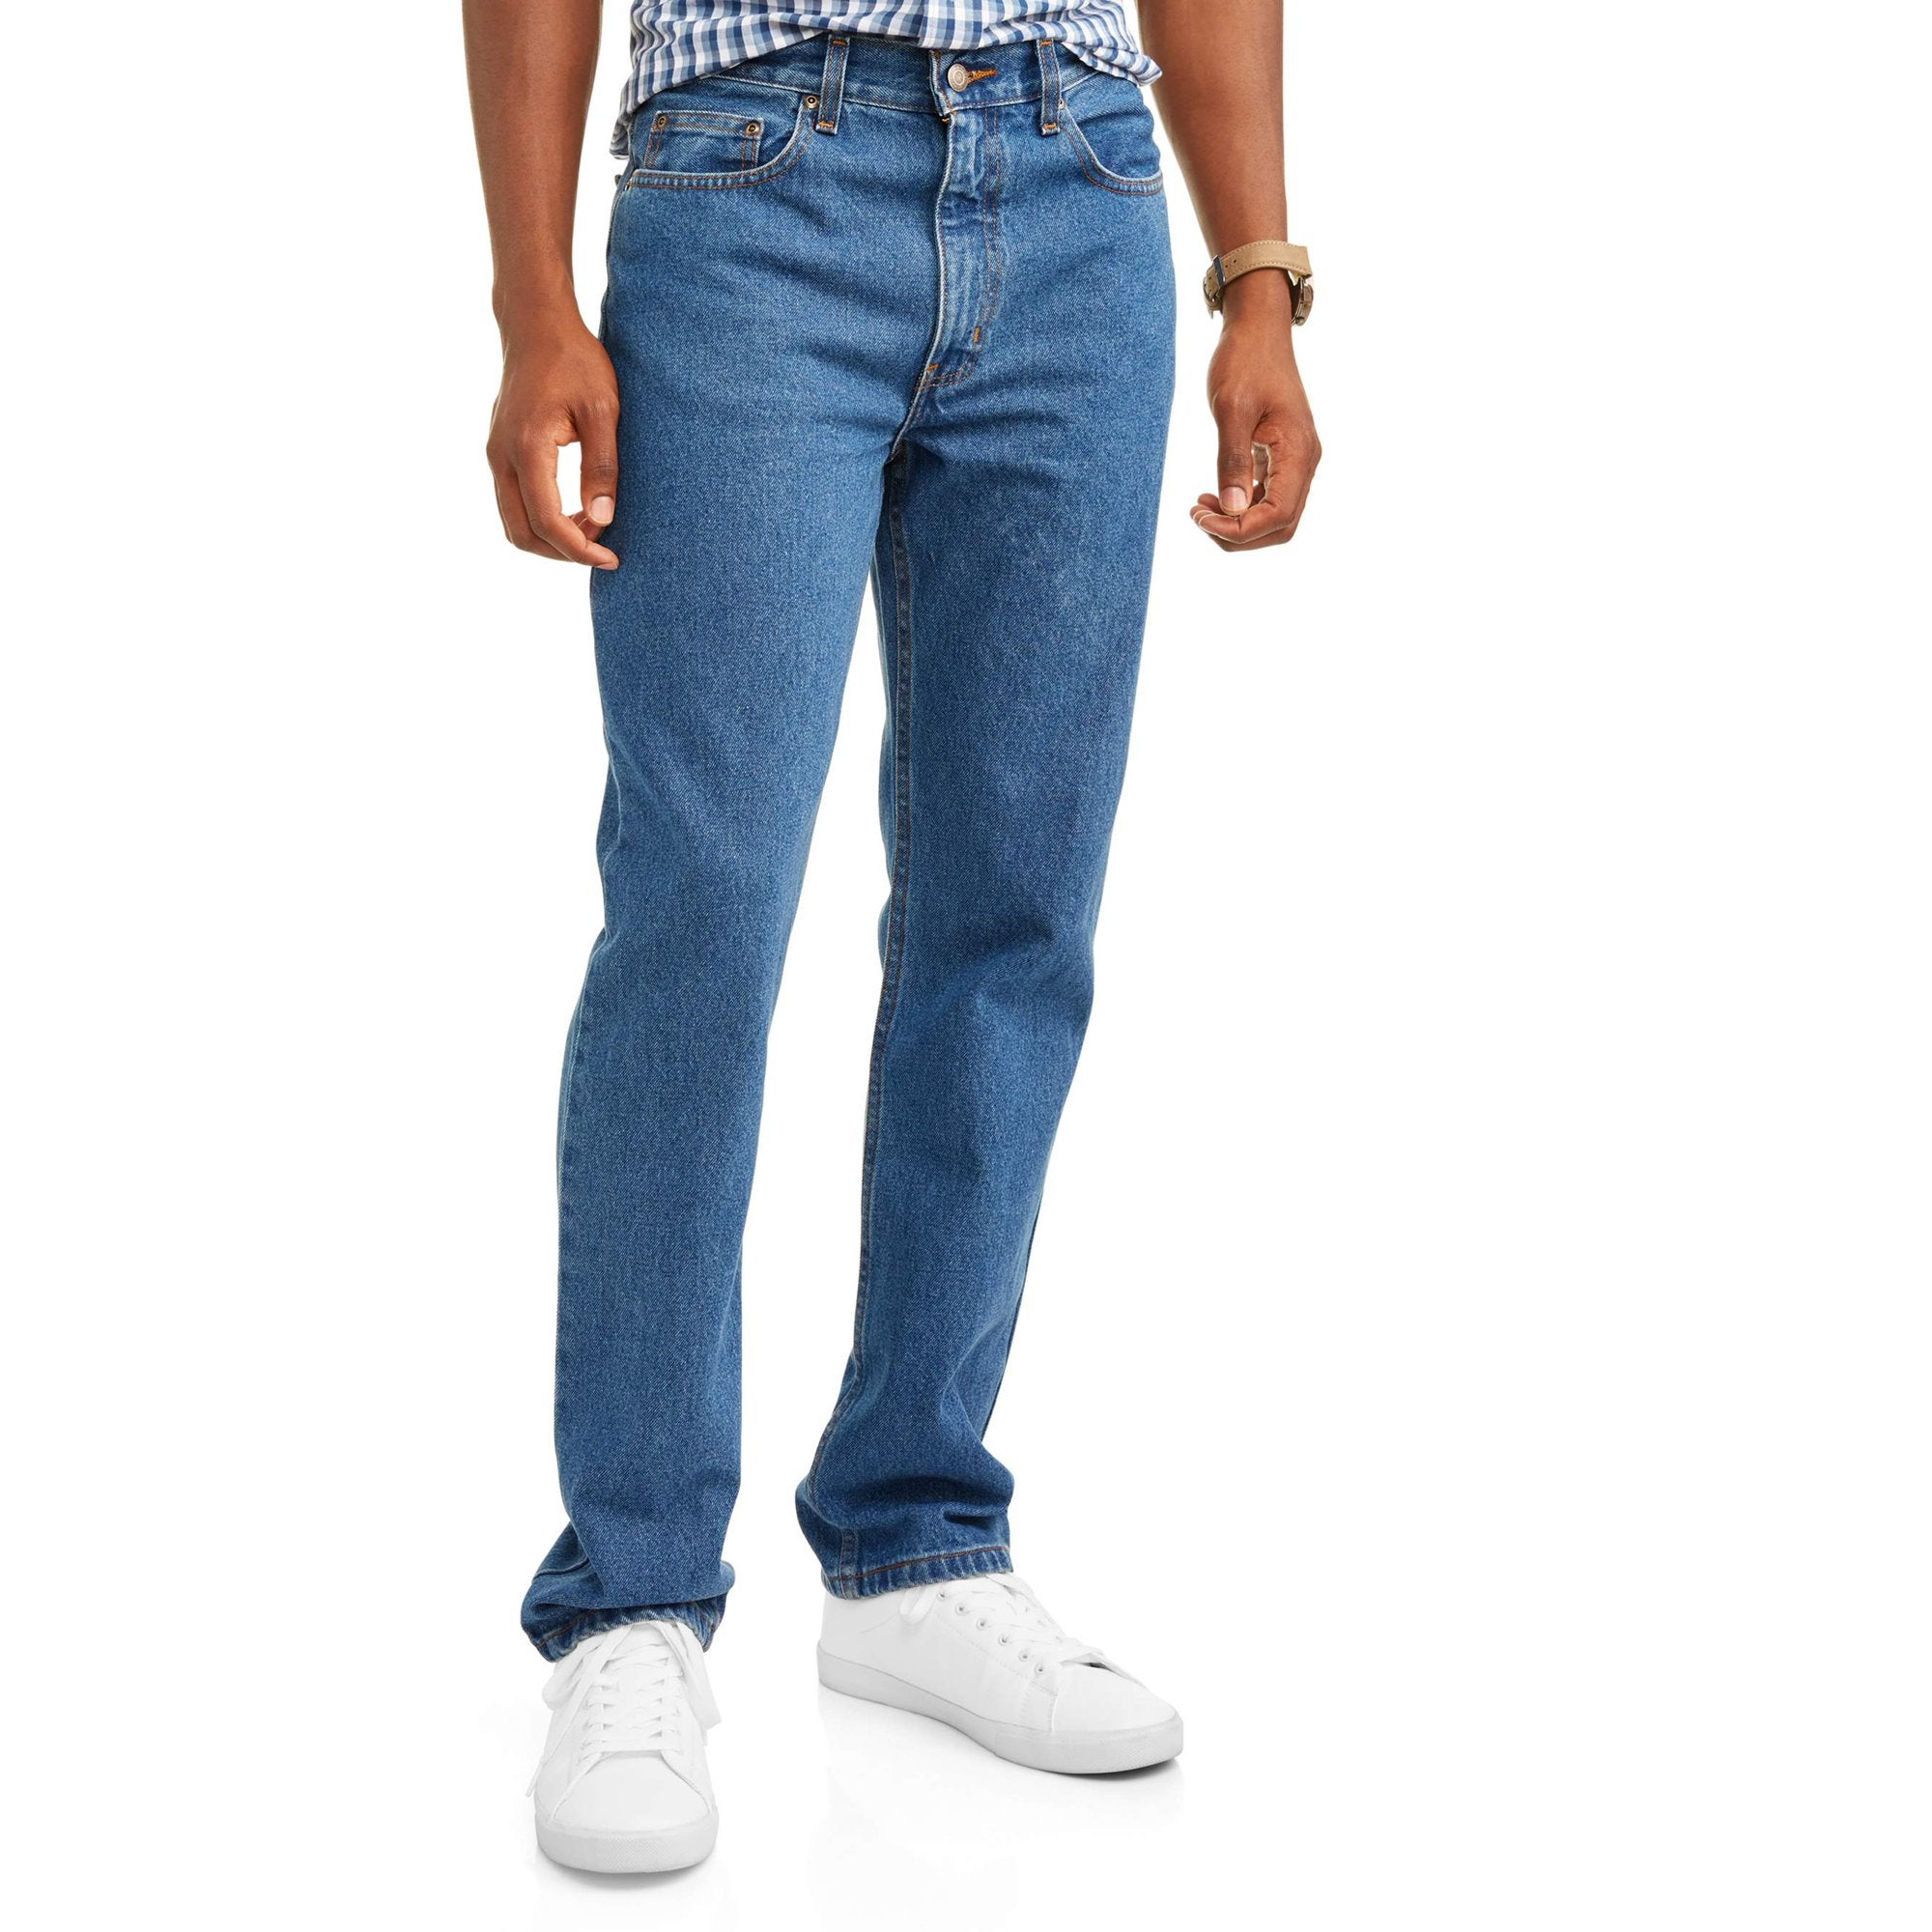 Walmart George regular fit jeans